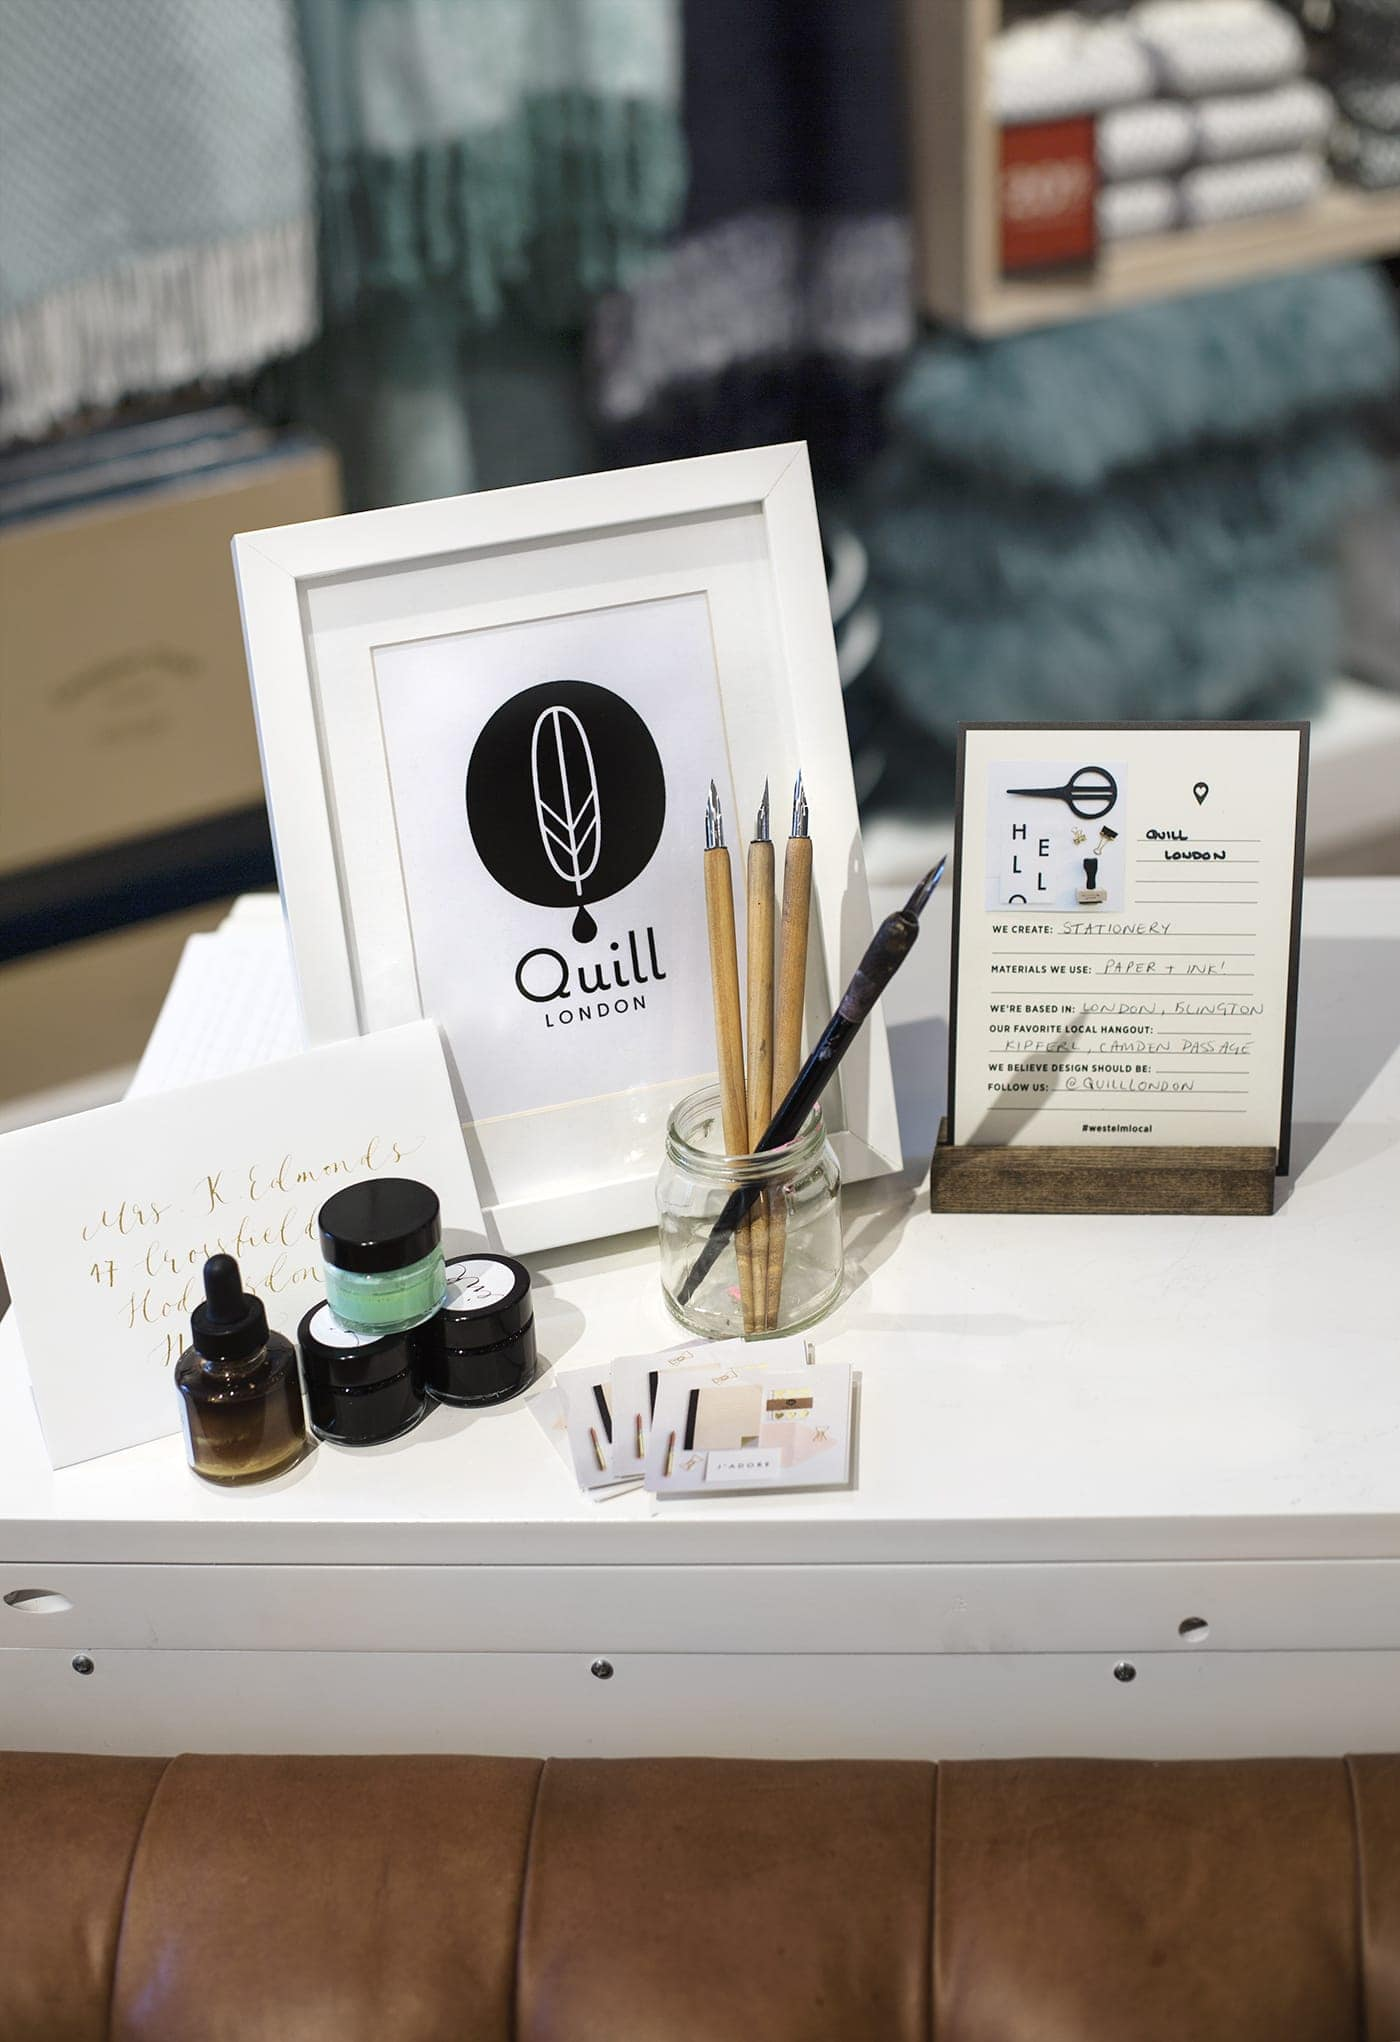 west elm pop up shop | Quill London